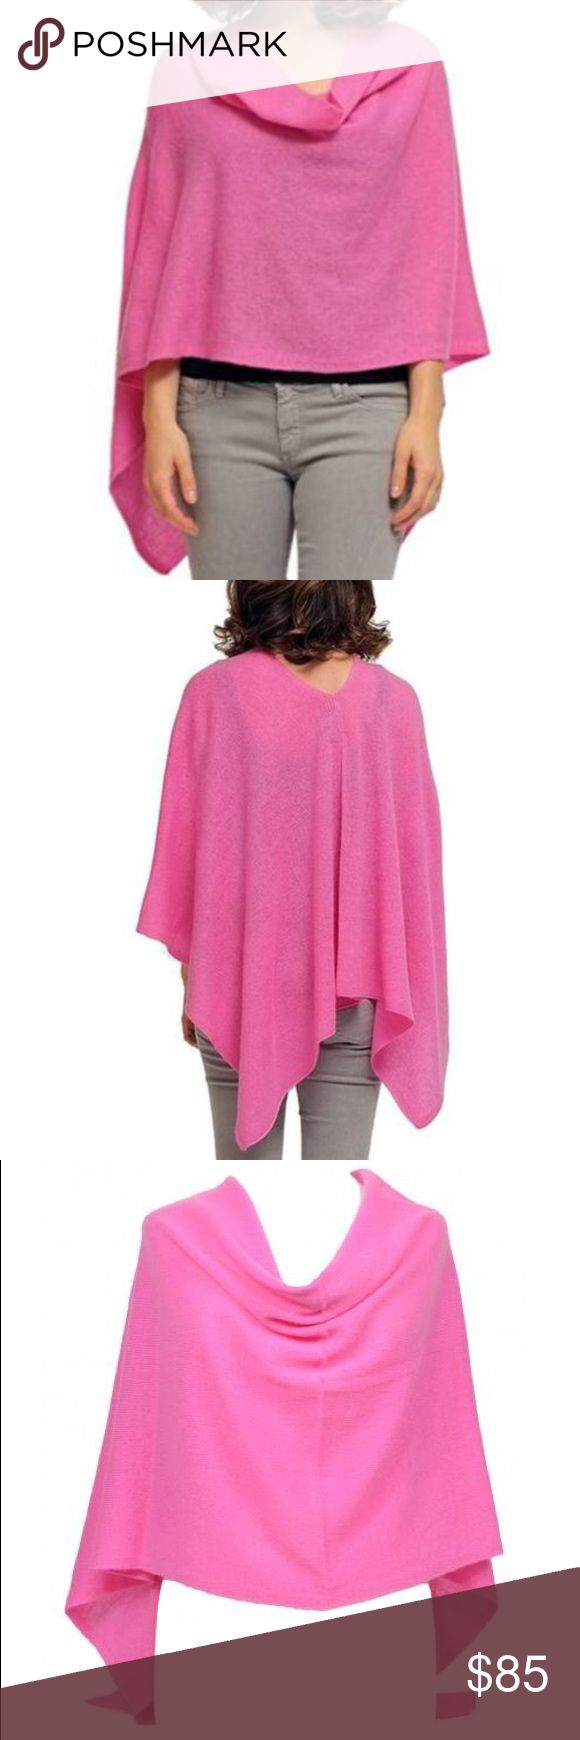 100% Cashmere Dress Topper / Poncho in Candy Pink Beautiful Claudia Nichole 'dress topper' in the color Candy (hot pink). This 100% cashmere poncho is in excellent condition and a one size fits all.  Manufacturers description: The Claudia Nicole Cashmere Dress Topper is so versatile that you can wear it with the seam down your arm, poncho style, or with the seam down your back, creating a soft cowl neck effect in the front. It's light & cozy, handy for travel and you'll be glad you have it…